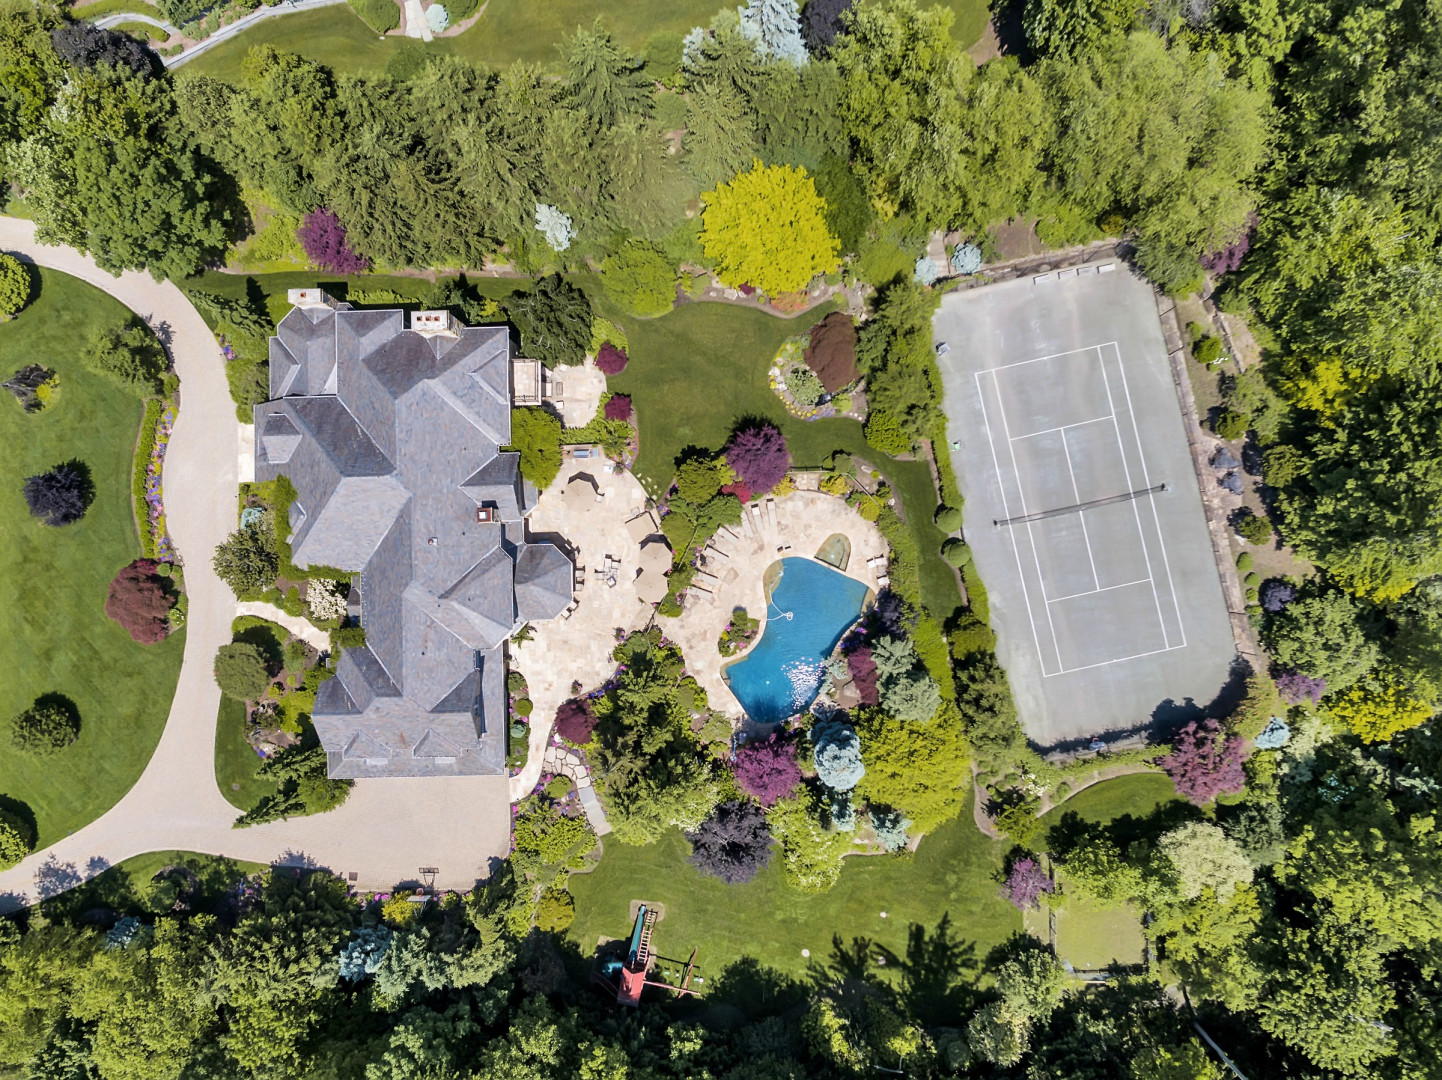 Single Family Home for Sale at Sensation Stone Manor 10 Buckingham Drive, Alpine, New Jersey 07620 United States